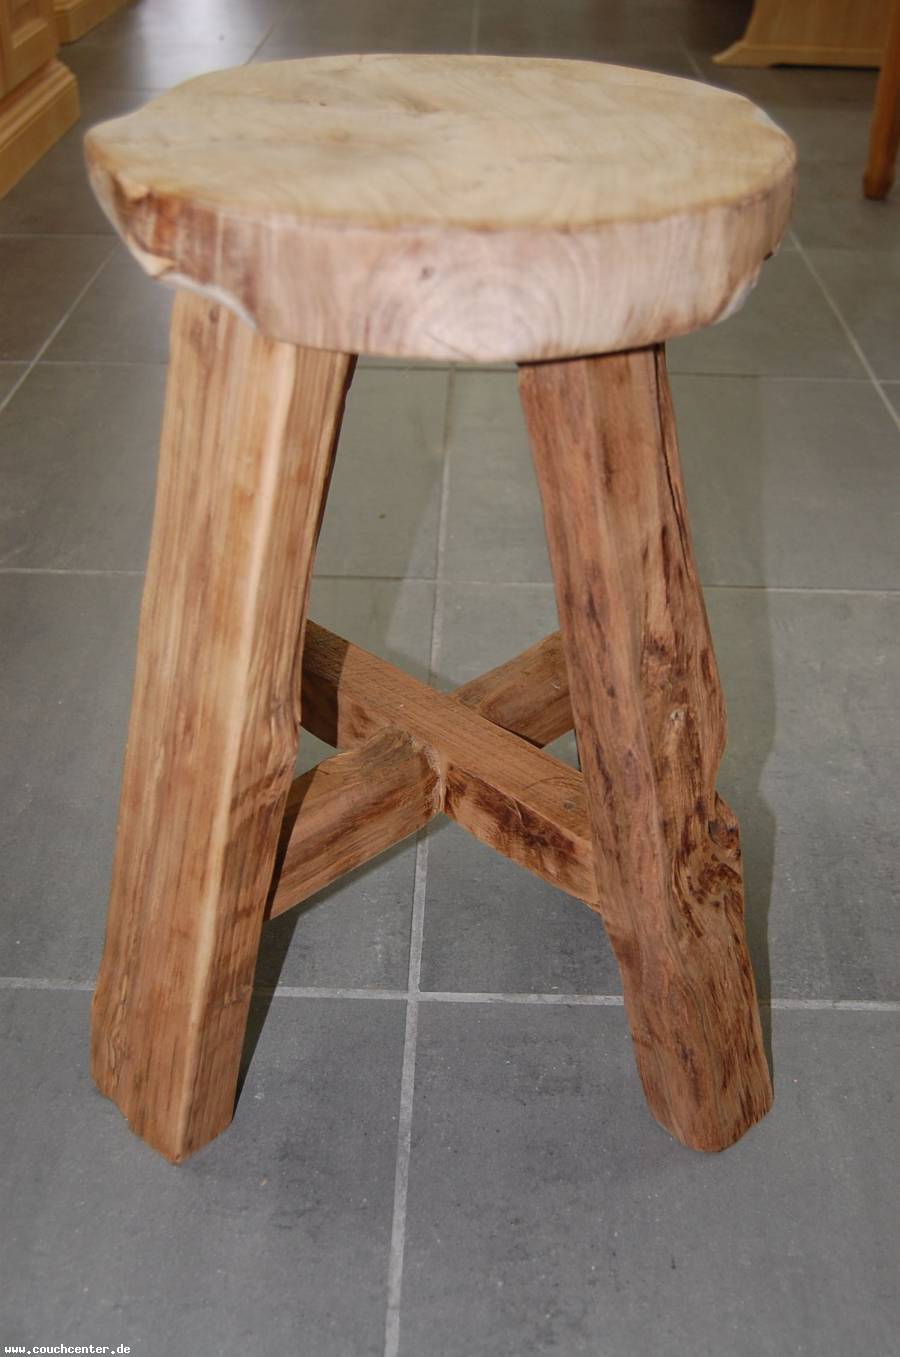 Couch Center Online Versandhandel Masssiv Holz Teak Holz Hocker